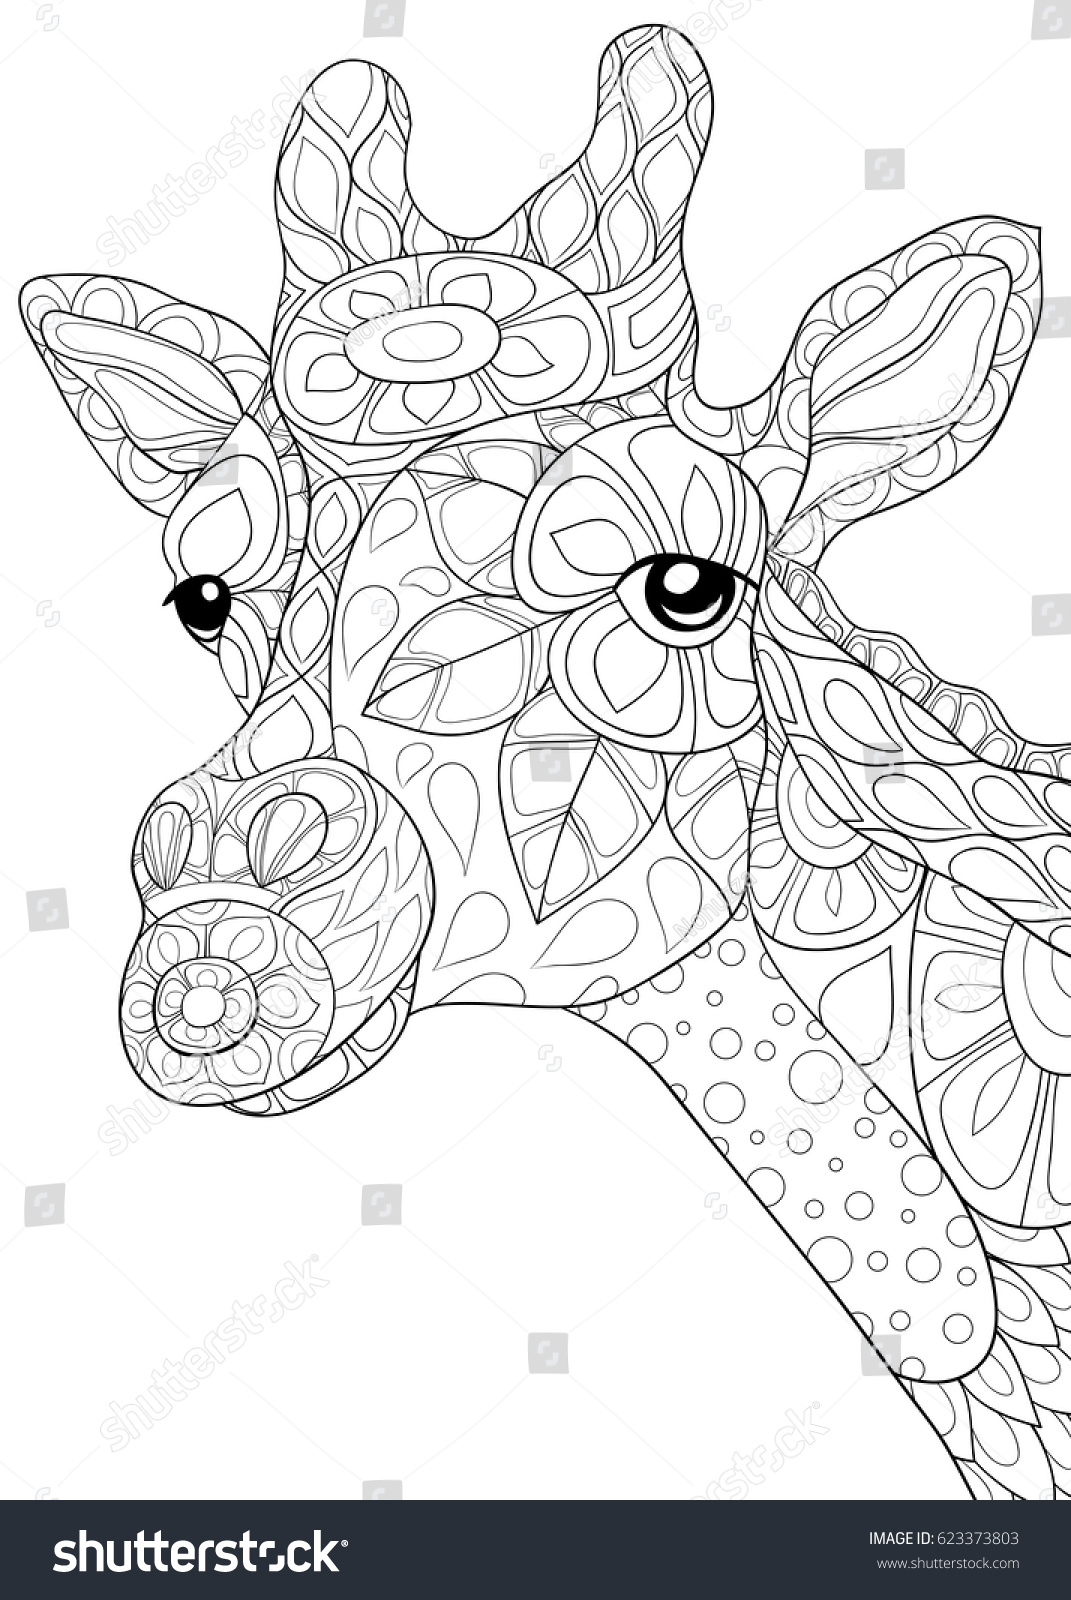 coloring page giraffe zen art stock vector 623373803